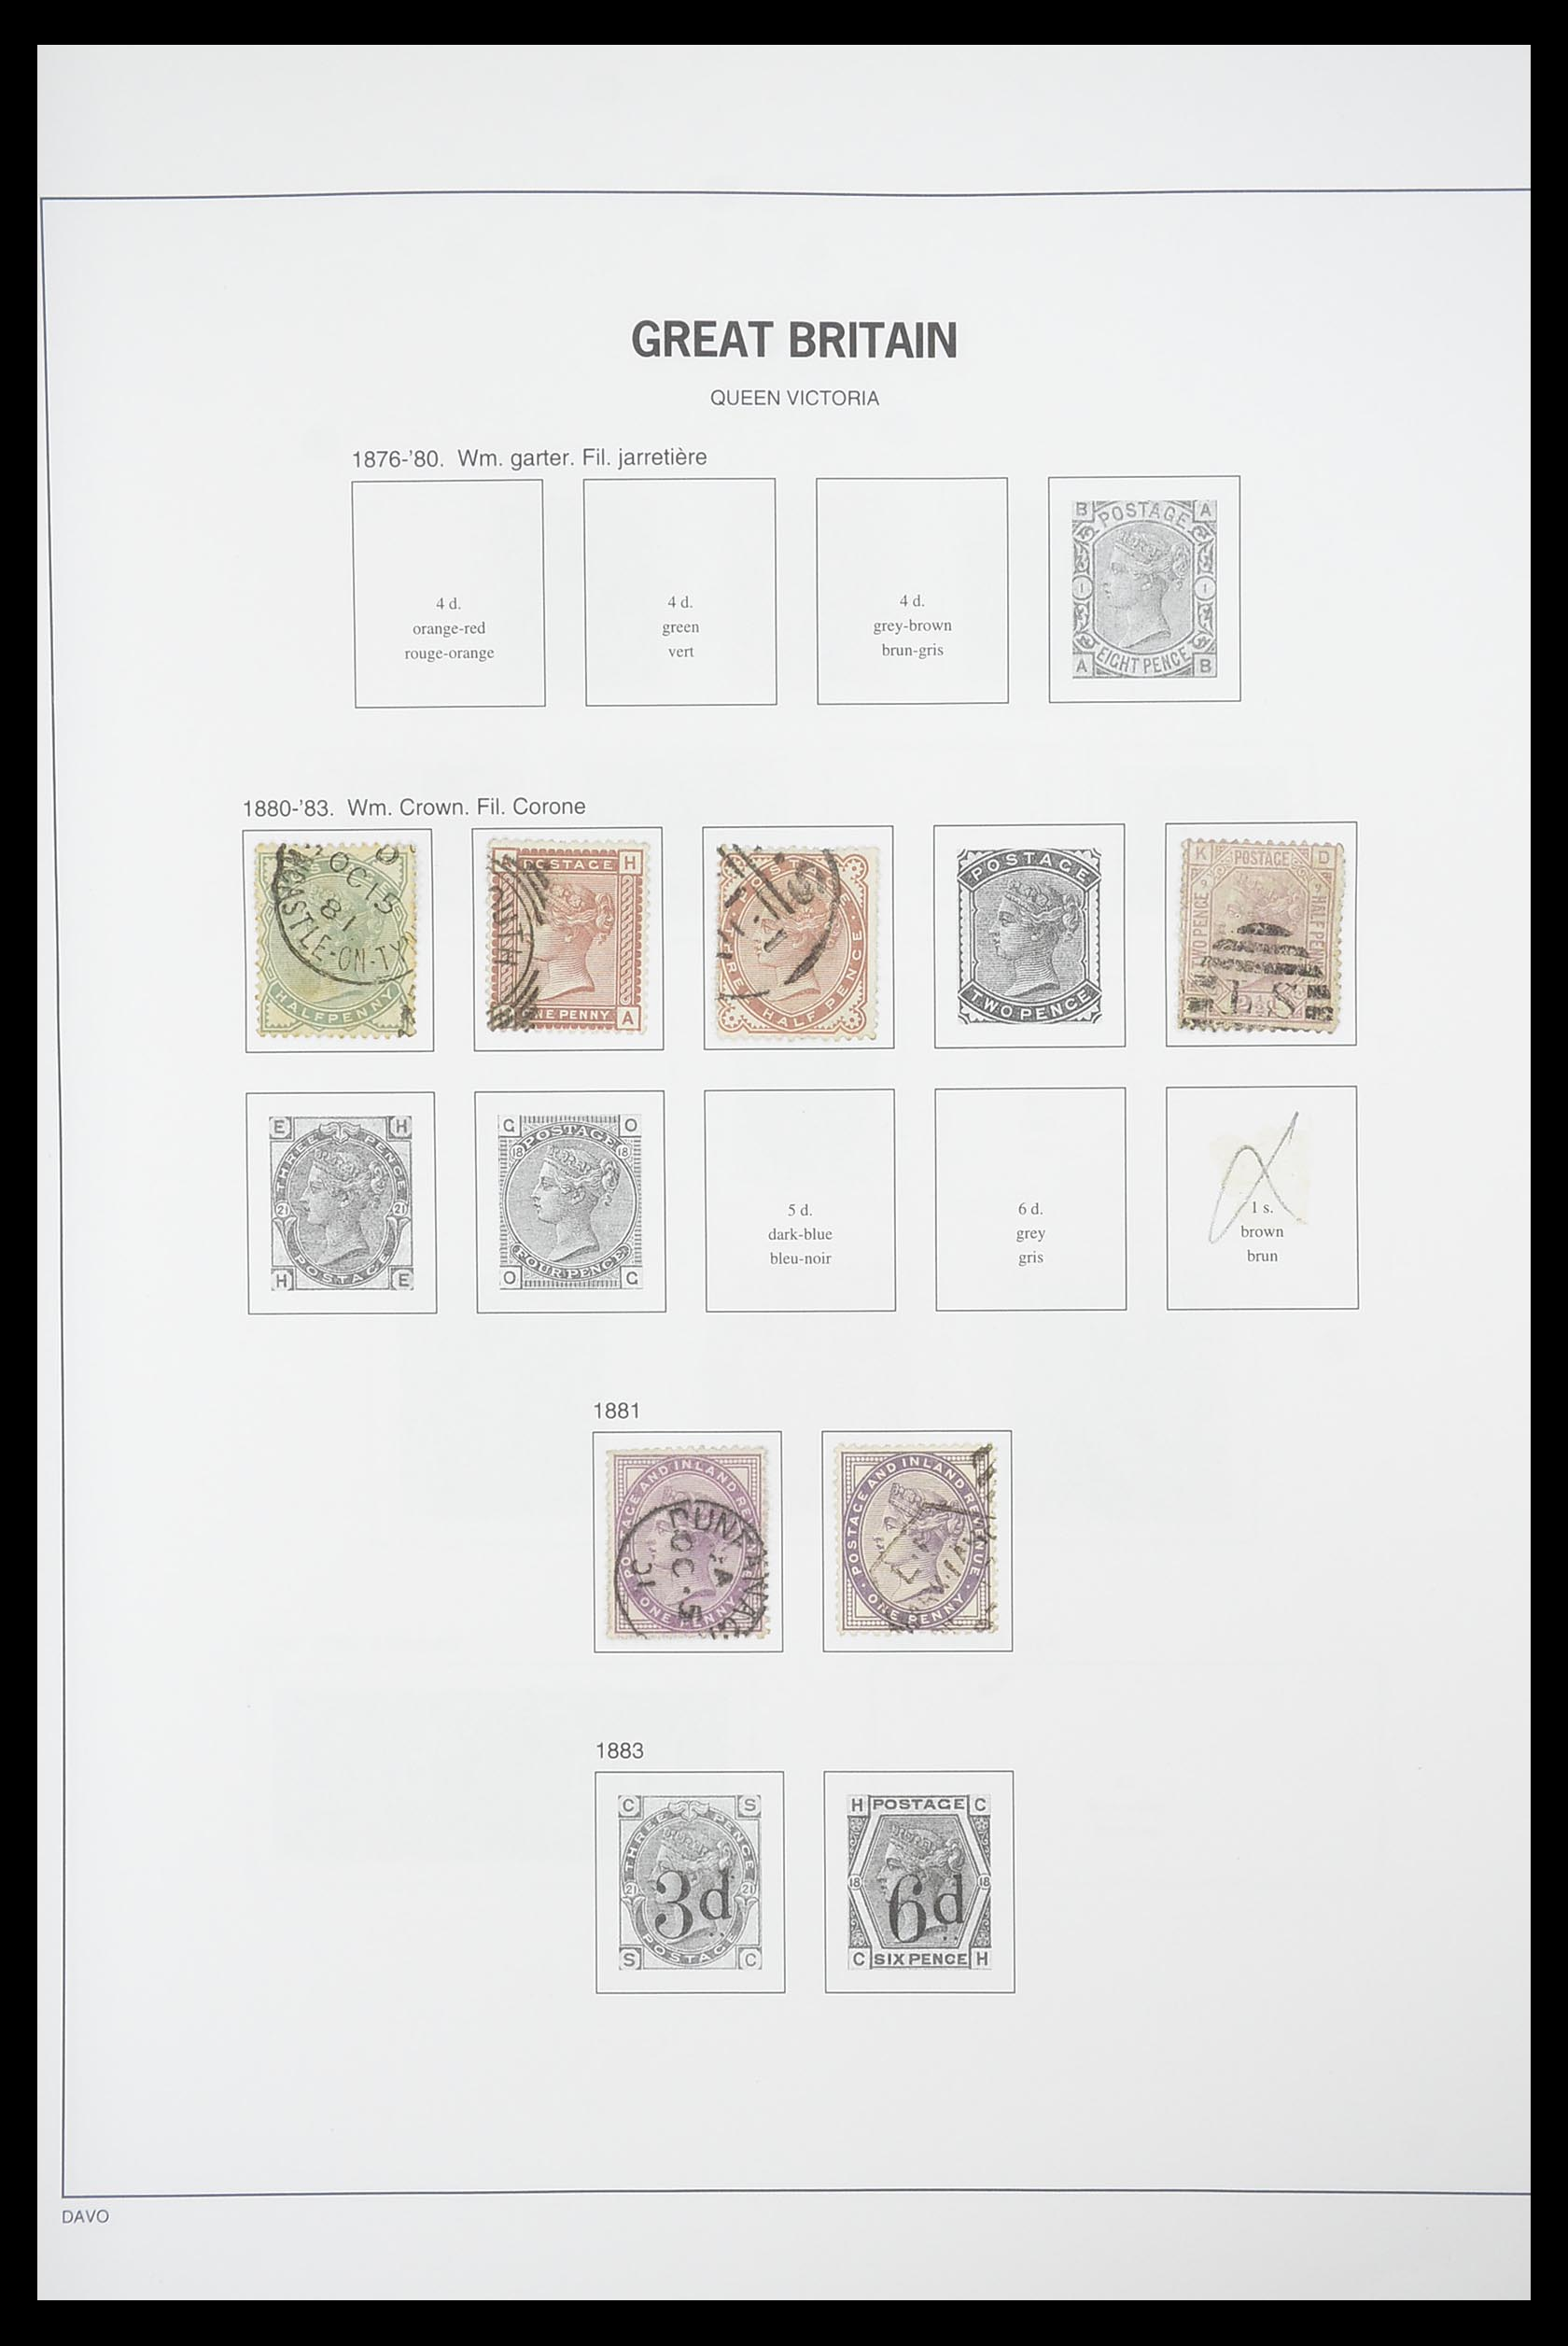 33898 004 - Stamp collection 33898 Great Britain 1840-2006.